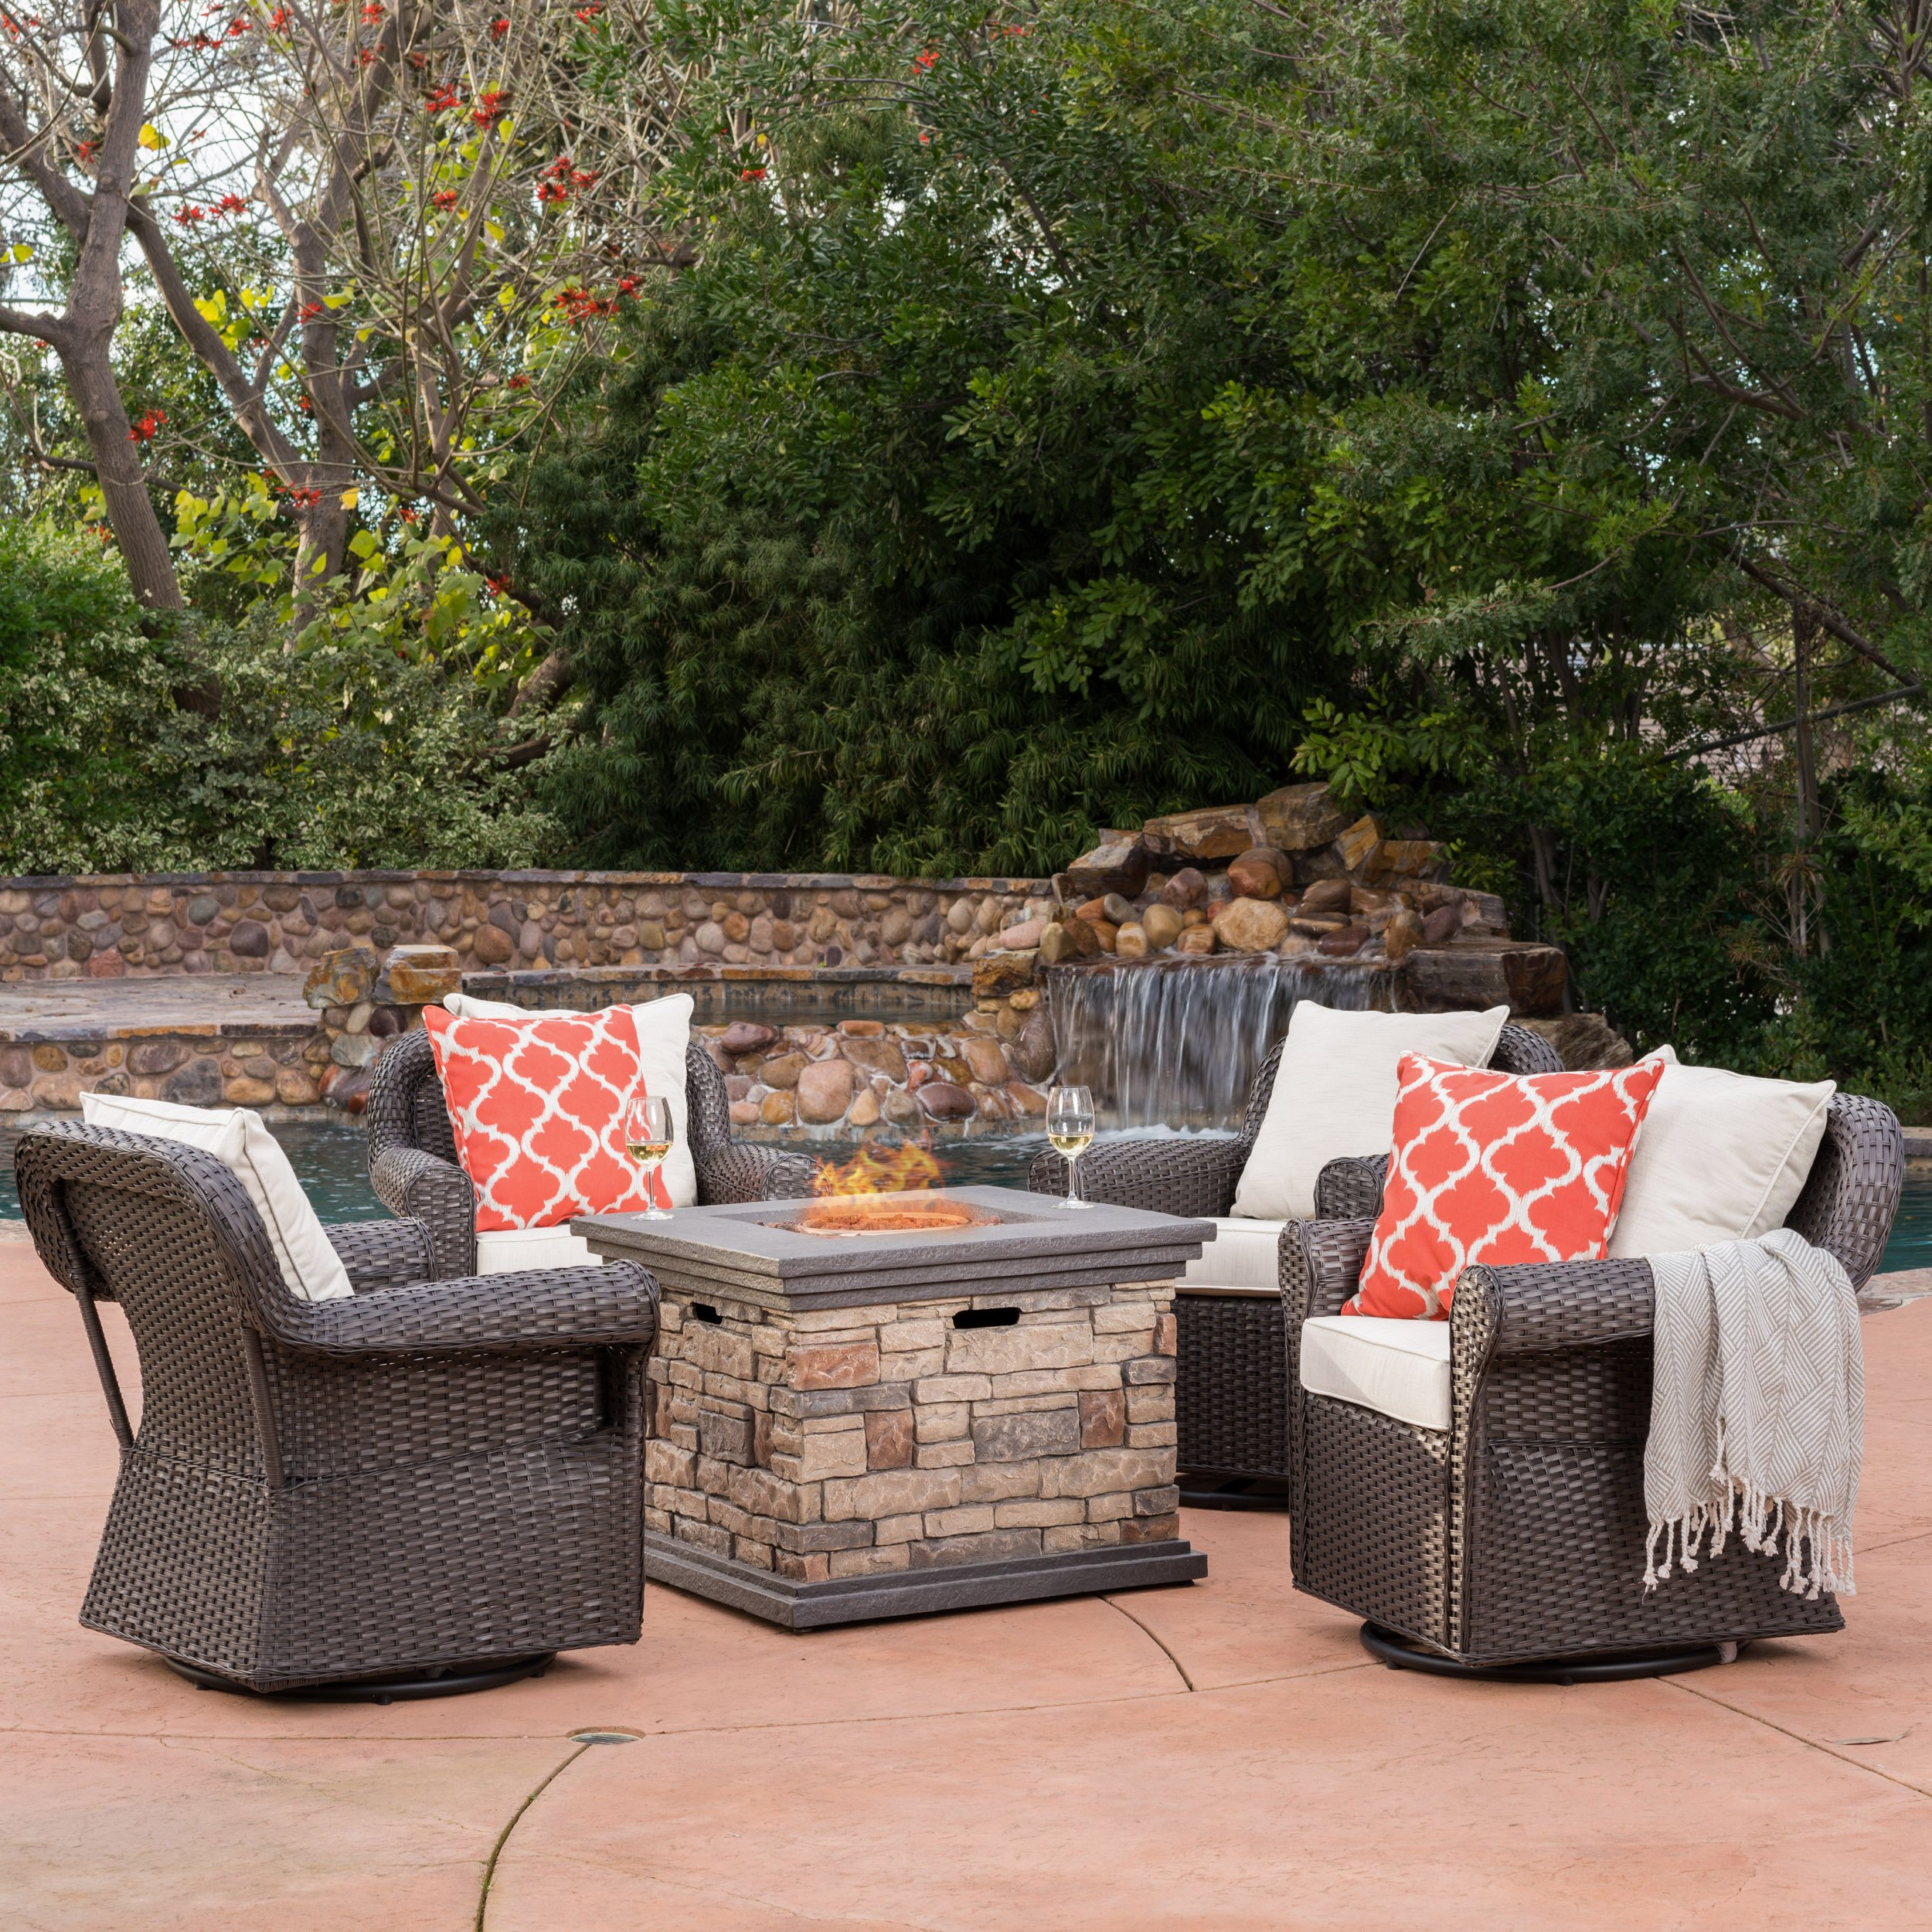 Augusta Patio Furniture ~ 5 Piece Outdoor Wicker Rocking Arm Chair and Propane (Gas) Fire Pit (Table) Set